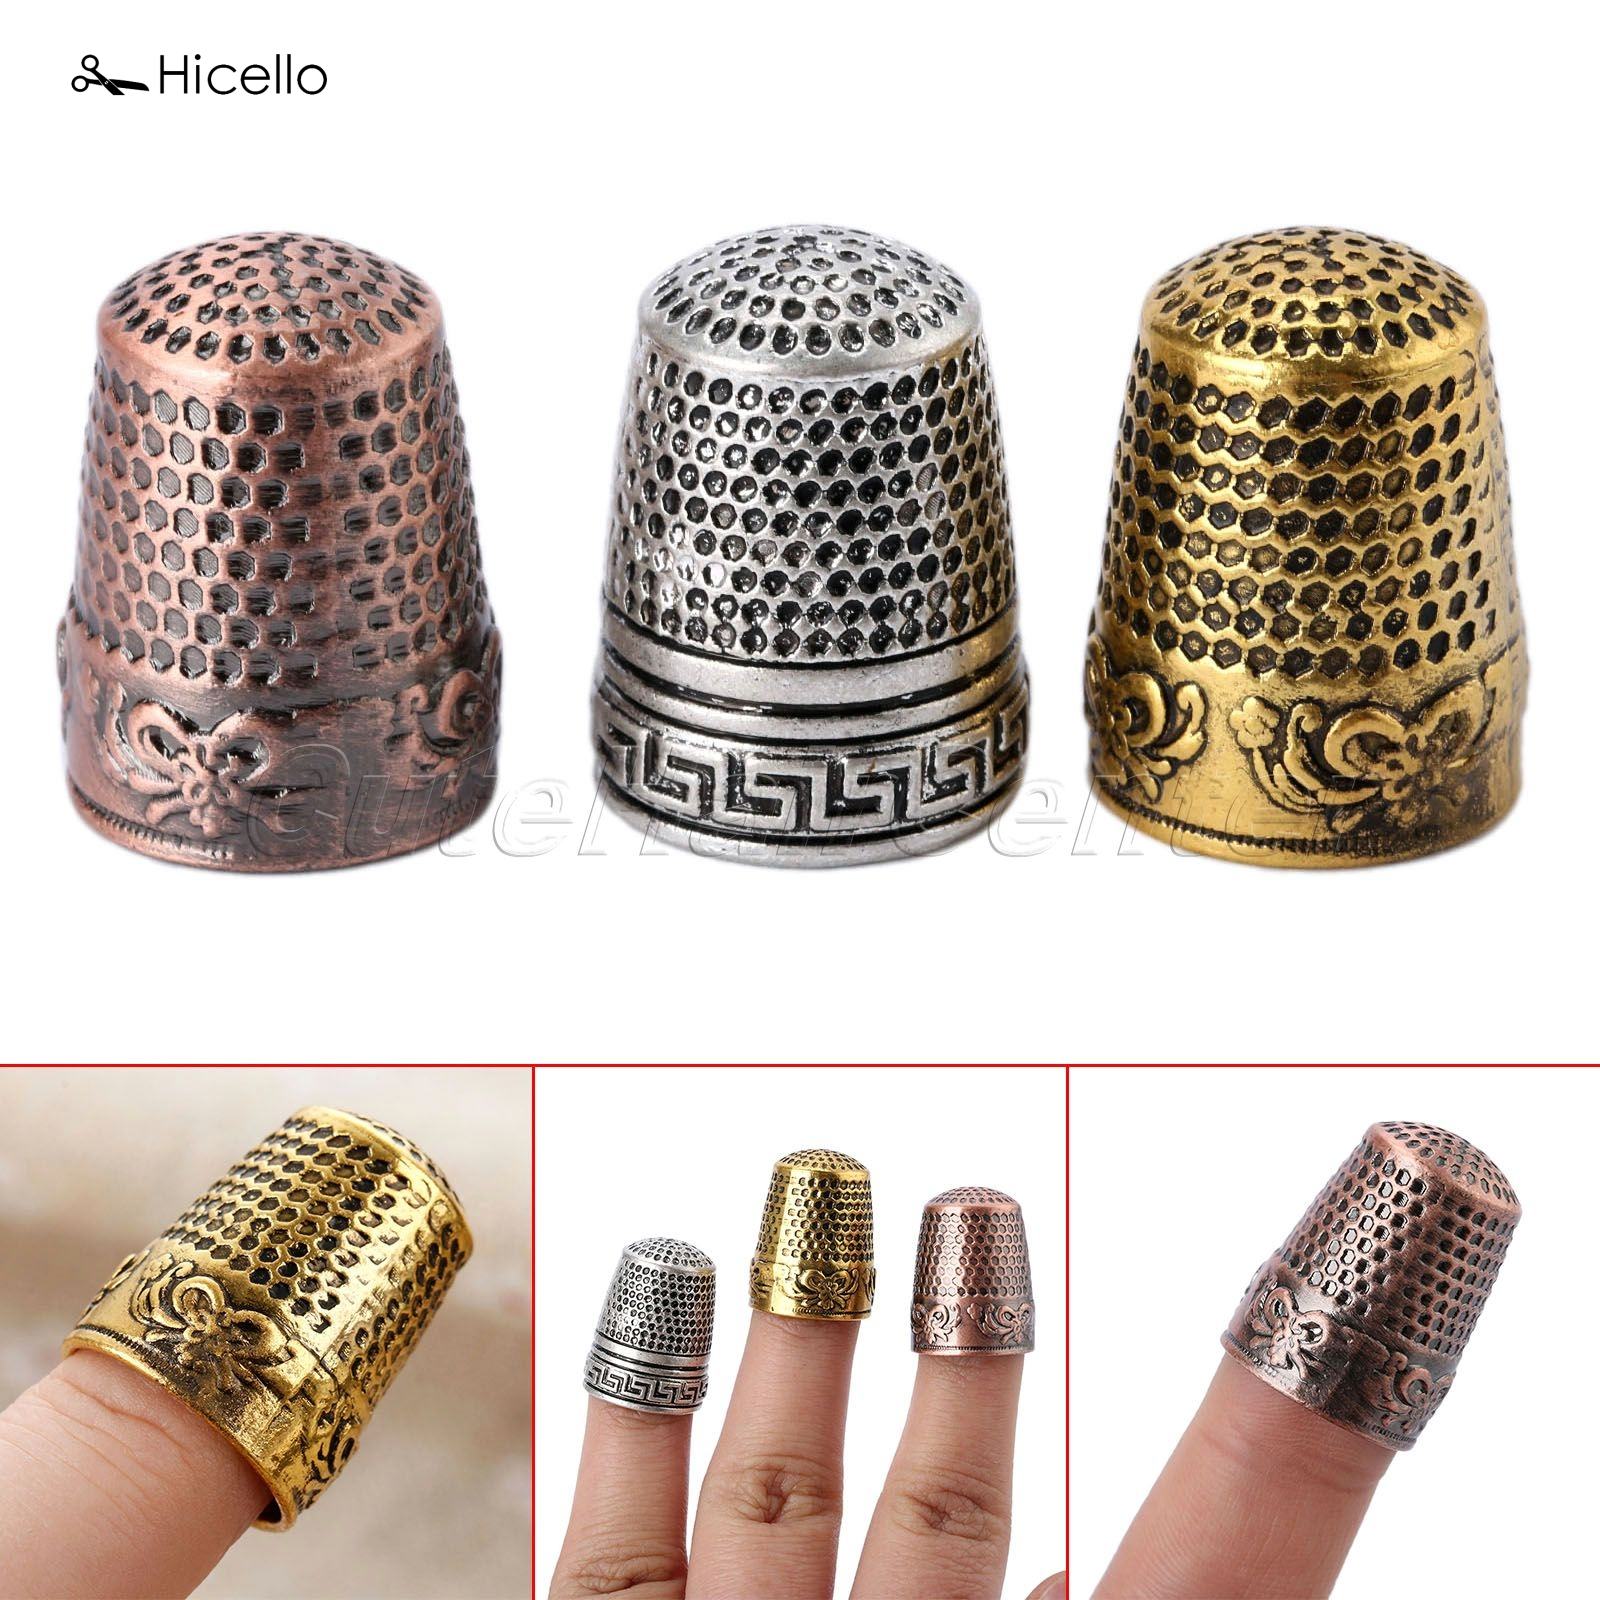 Hicello 1pc Șervețel de cusut Protector de degete Model clasic Instrument de cusut din metal Hard Needles Partener costura 2.3cm